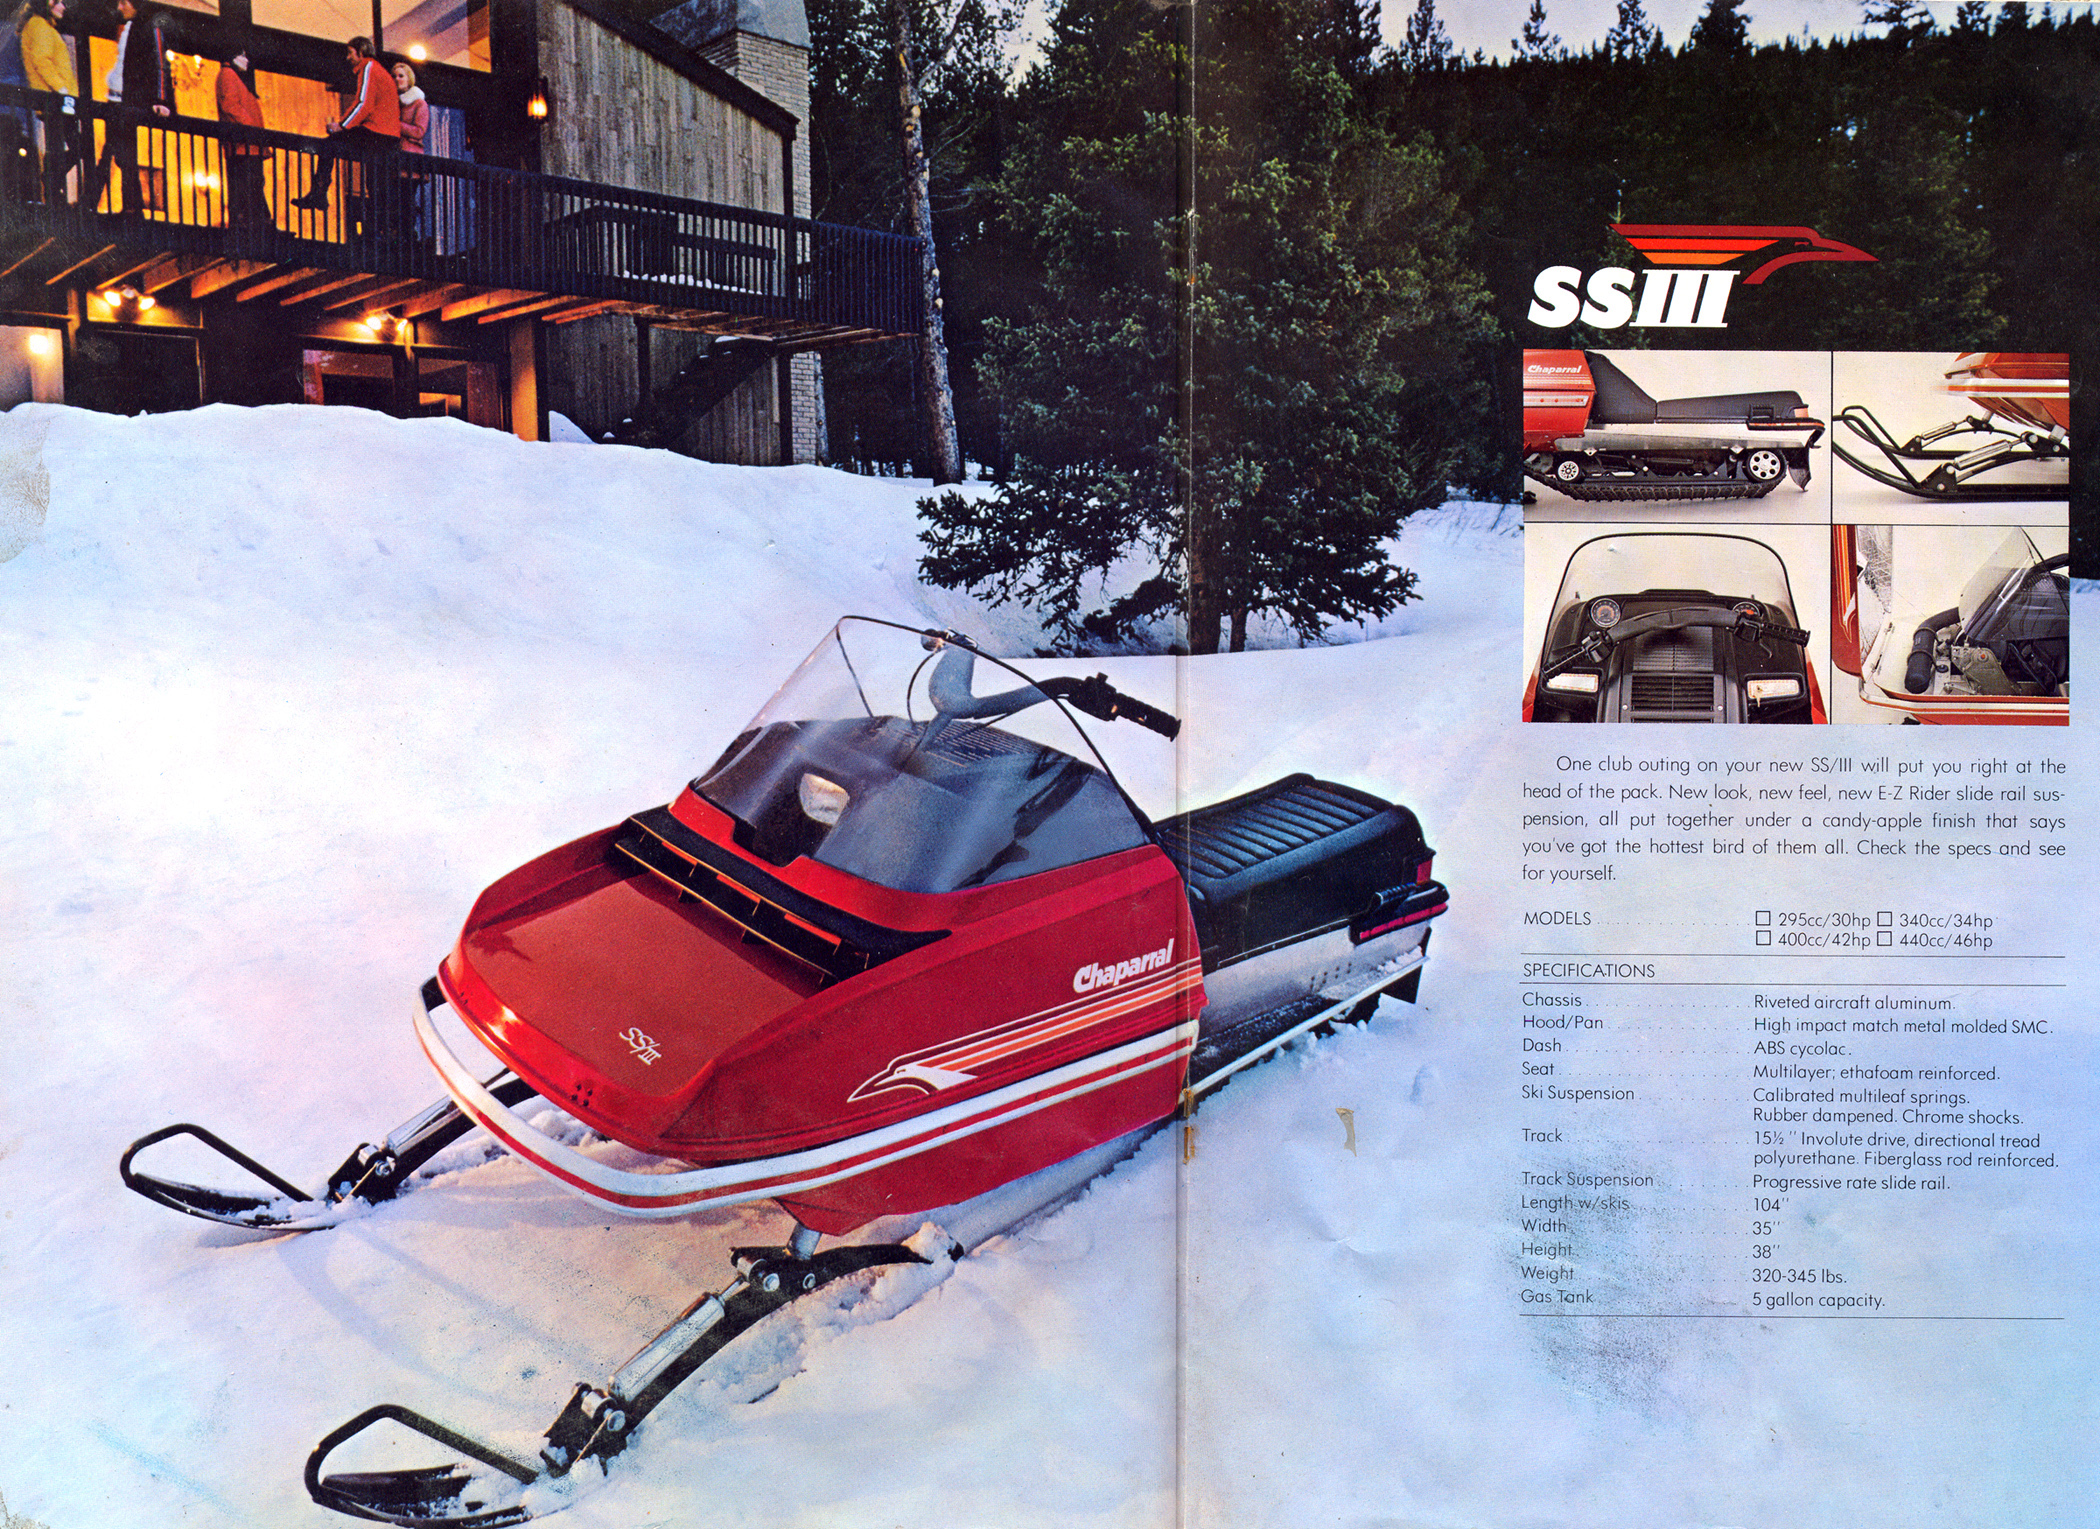 10th anniversary march 15 2012 page 325 for Vintage sleds